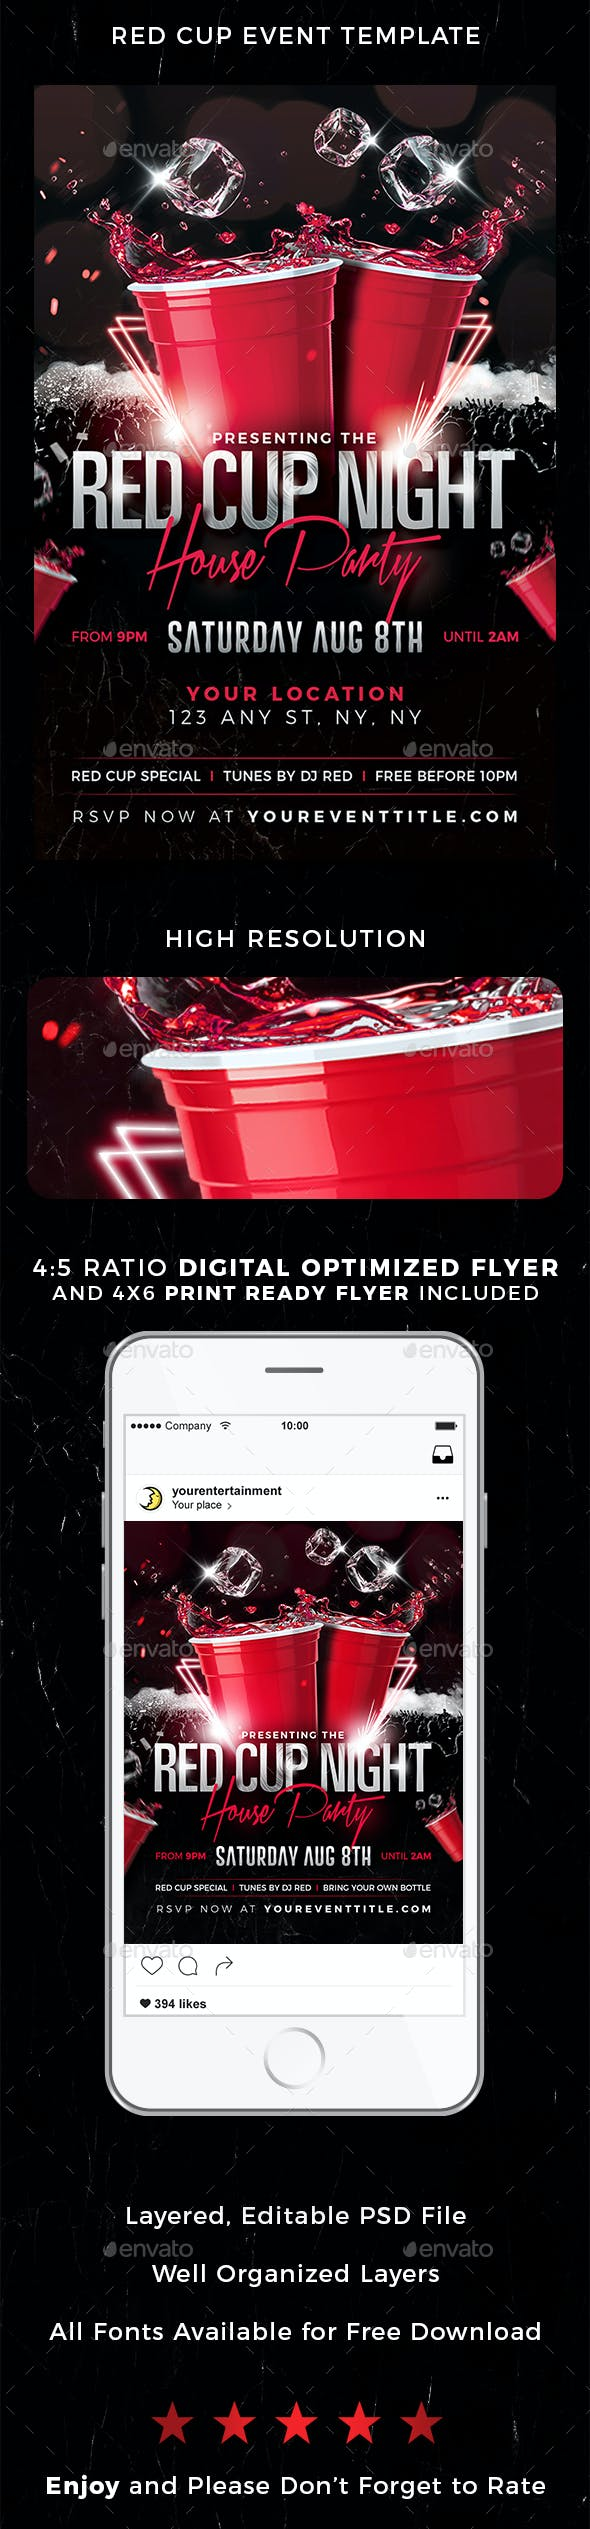 red cup event flyer by brothermoon graphicriver